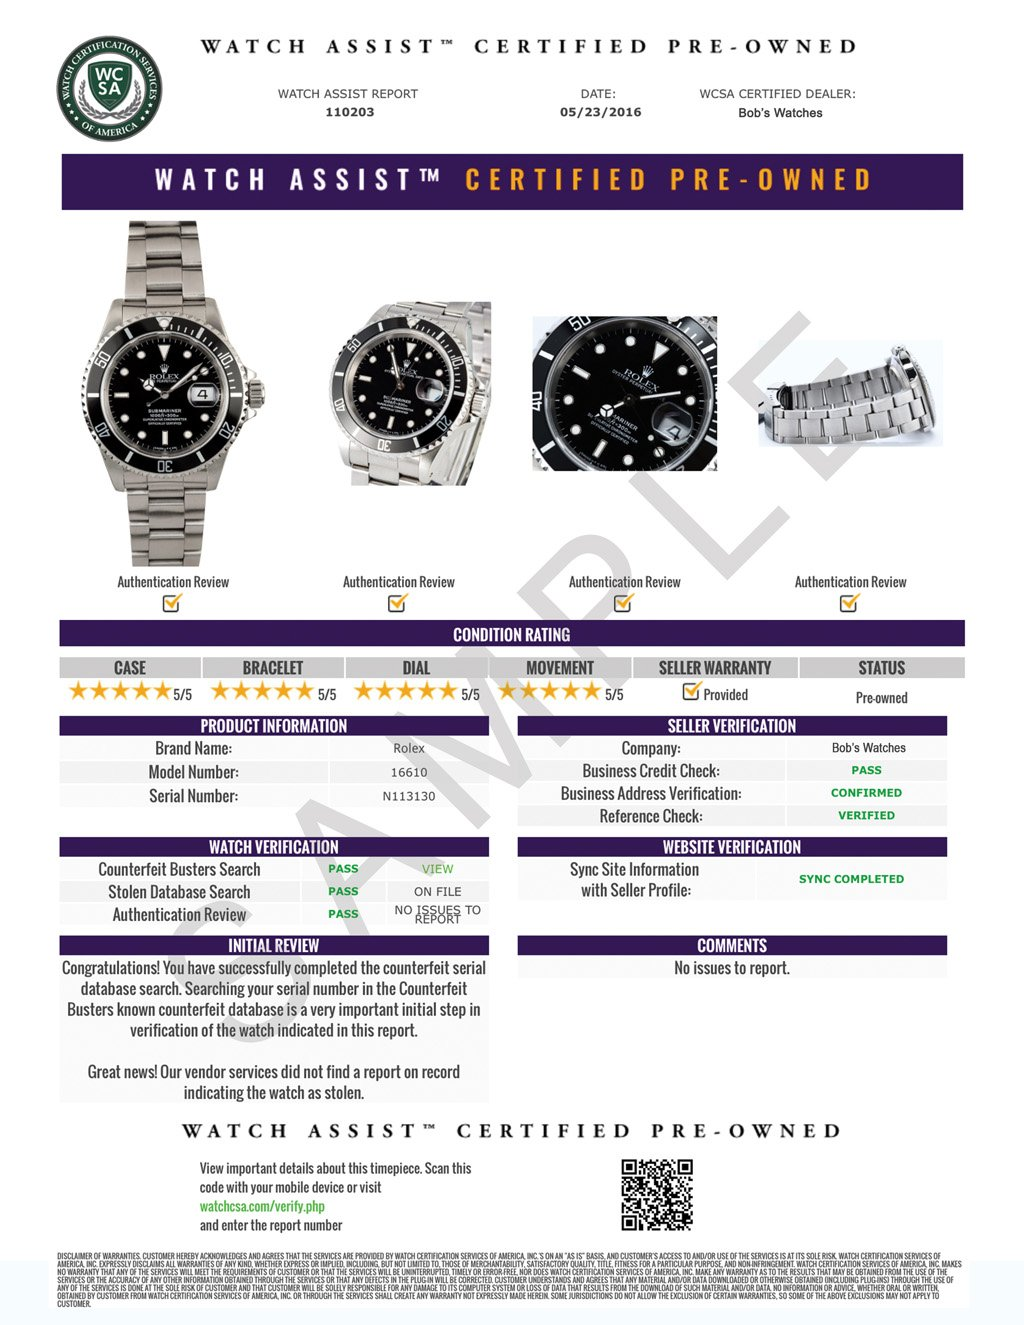 Watch Assist Certified Pre-Owned Certificate Sample Report